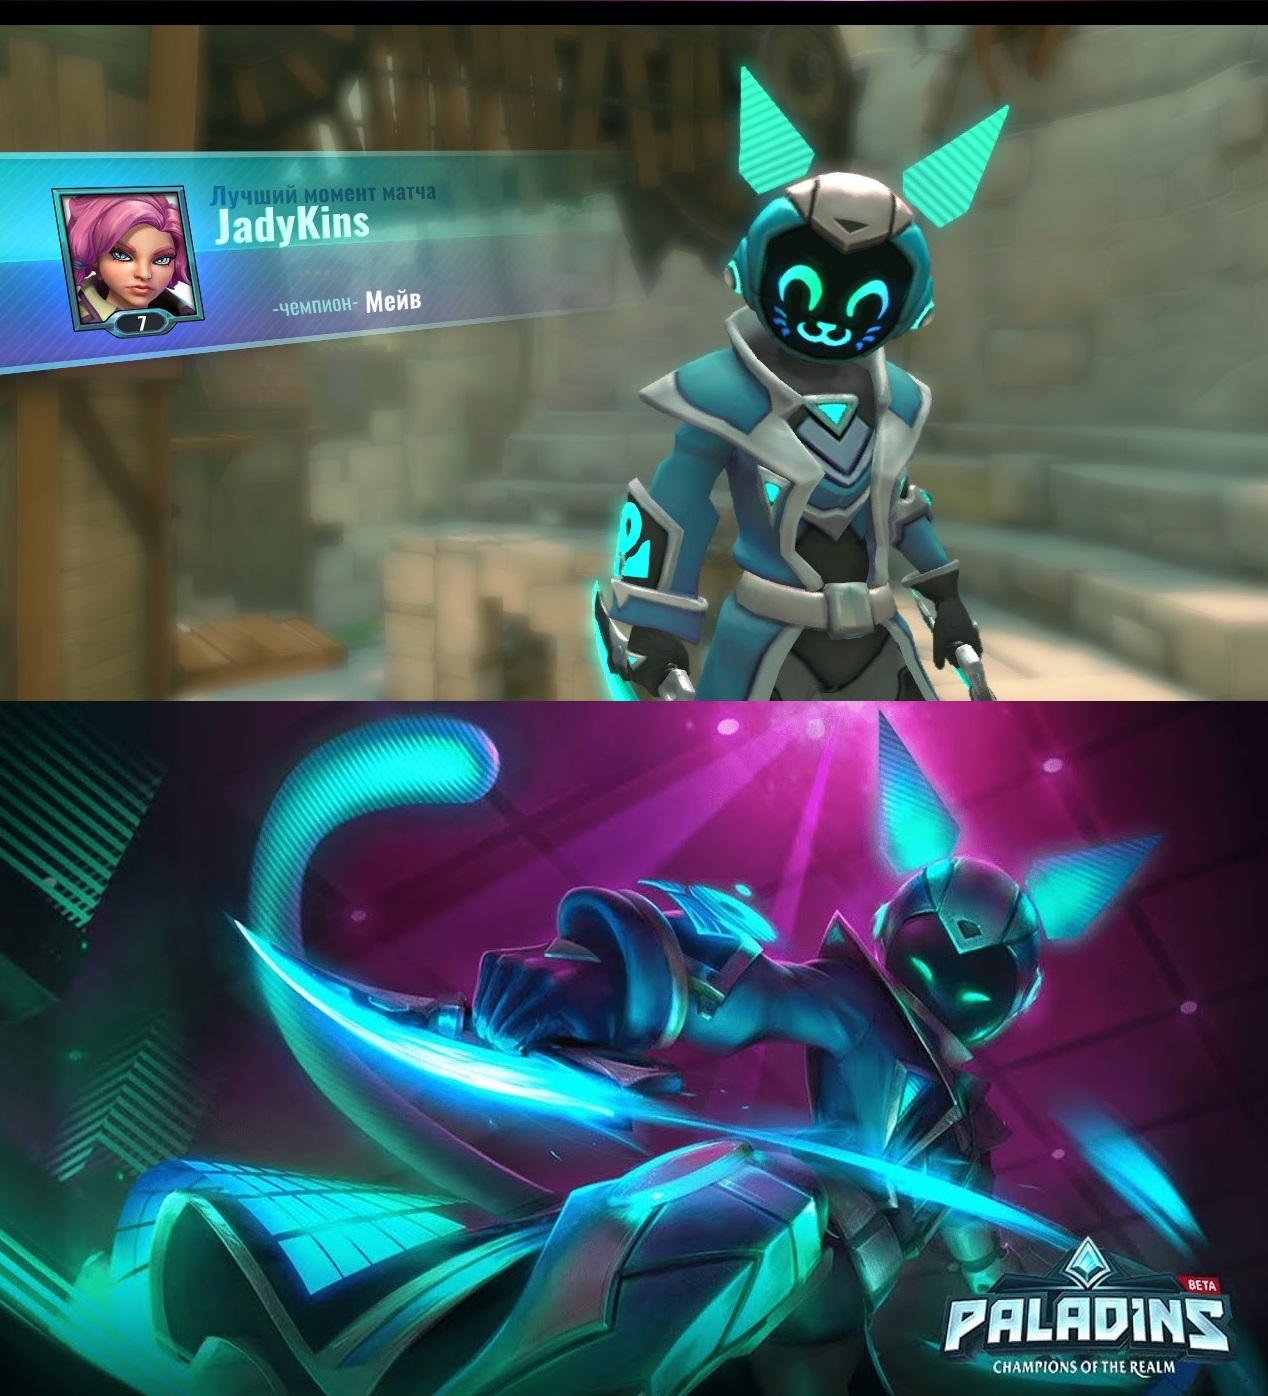 Art VS Realitty, Which Is Better? : Paladins